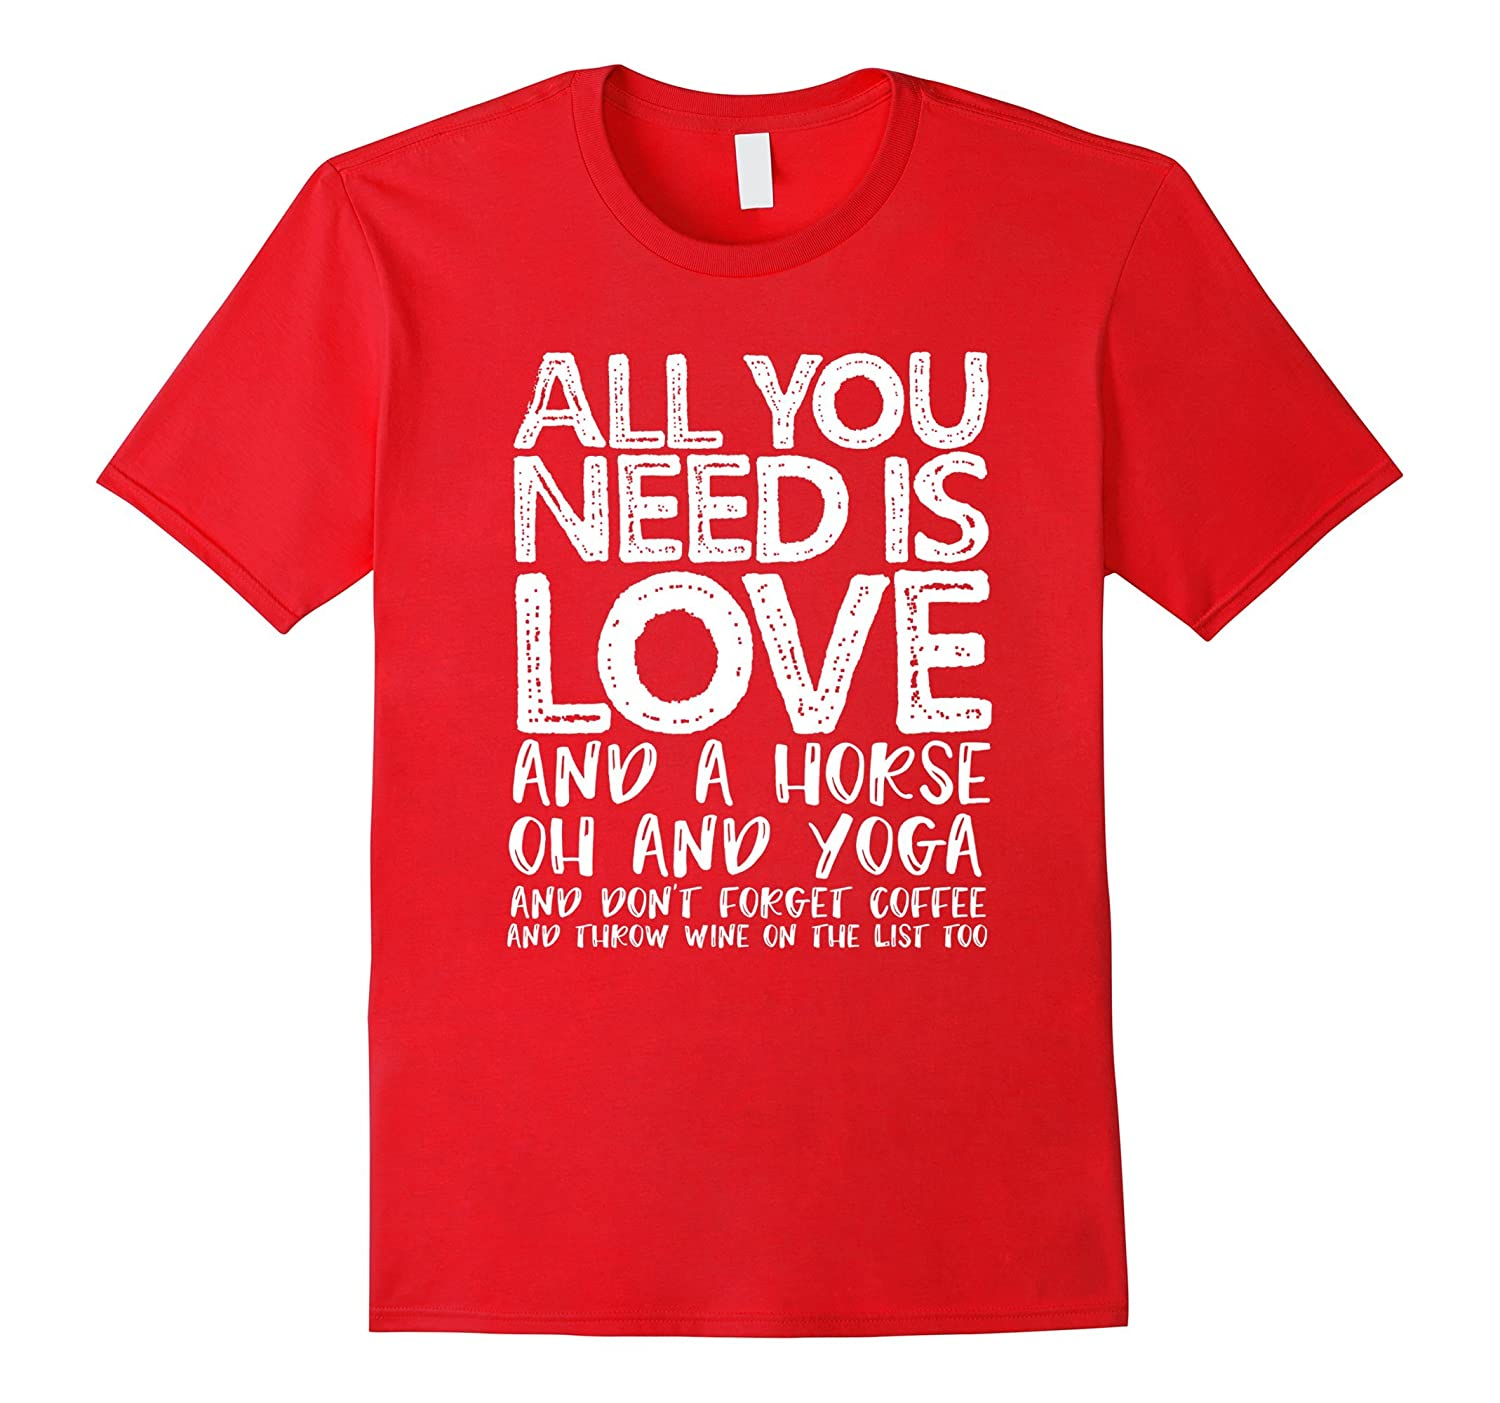 All you need is love, a horse, yoga, coffee and wine-Art